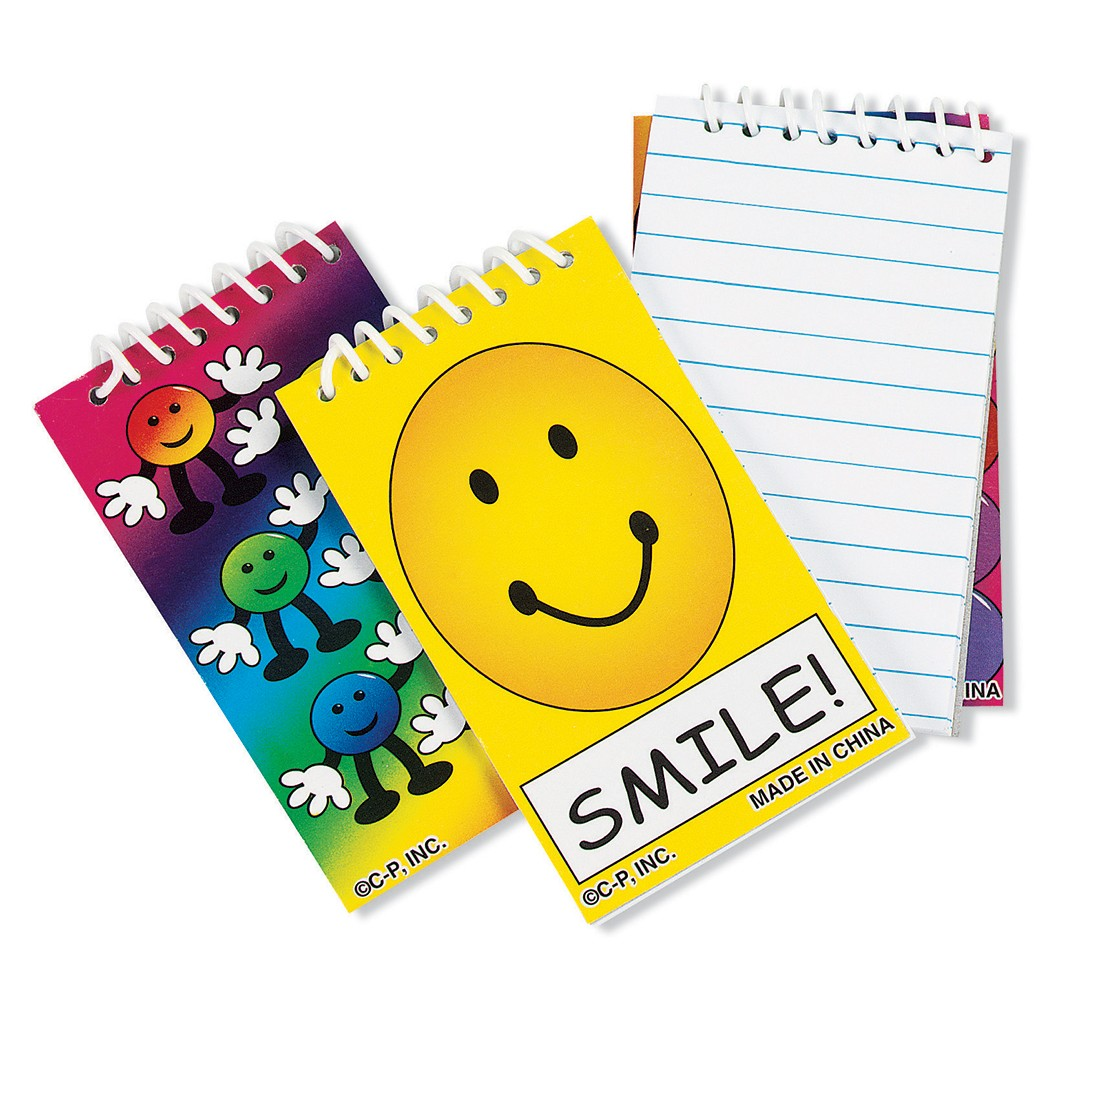 Groovy Smiley Notepads [image]